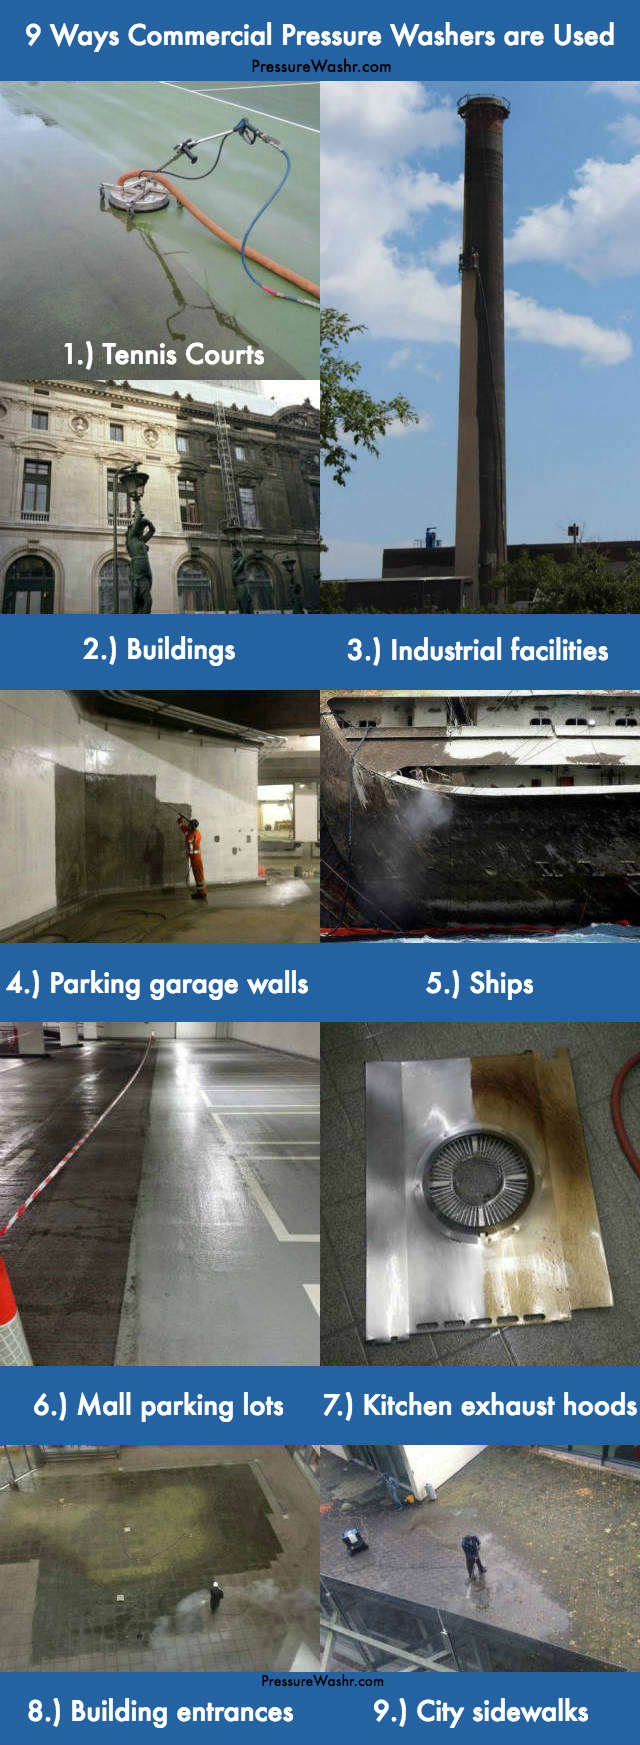 9 commercial pressure washer-industry uses pics